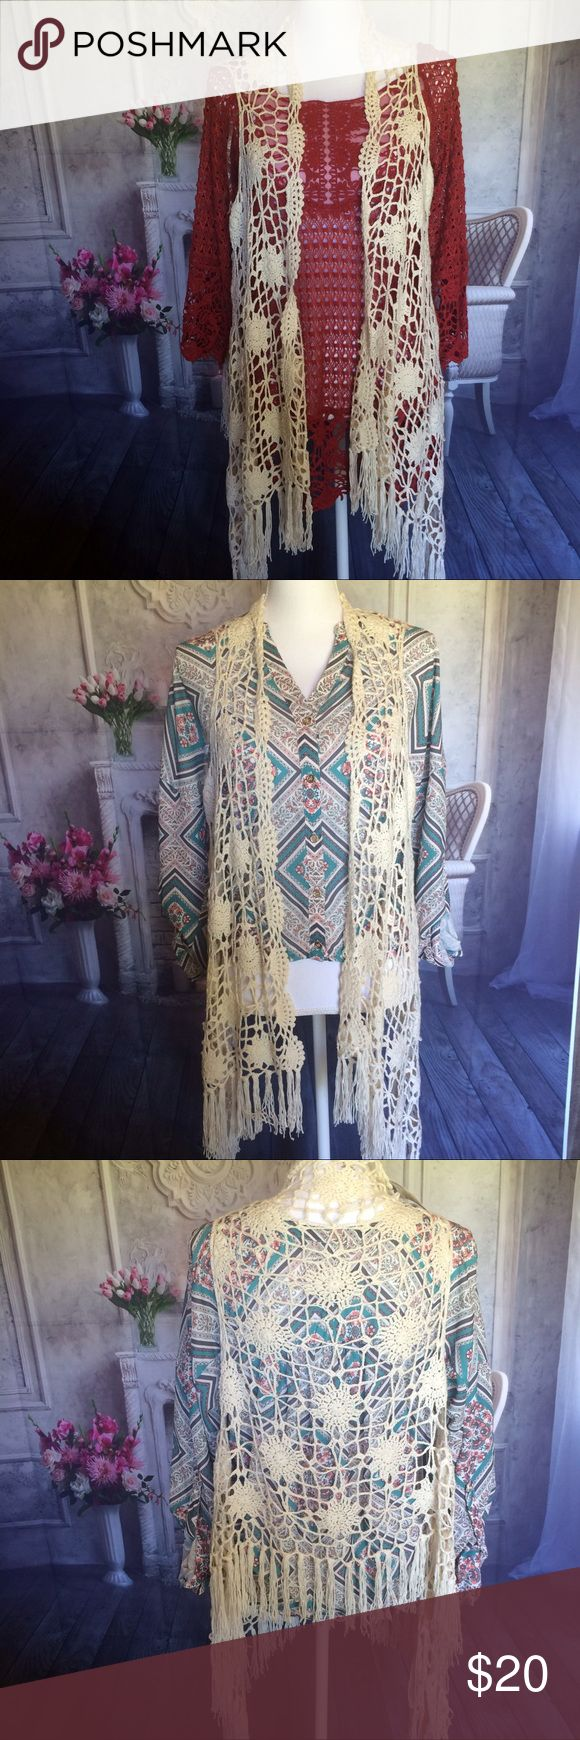 New Crochet Cardigan Sz Small Cream Color Very pretty cardigan sz small ex condition longer in front sides shorter in back new with tag, only cardigan for sale on this listing. The other tops different listing. Tops